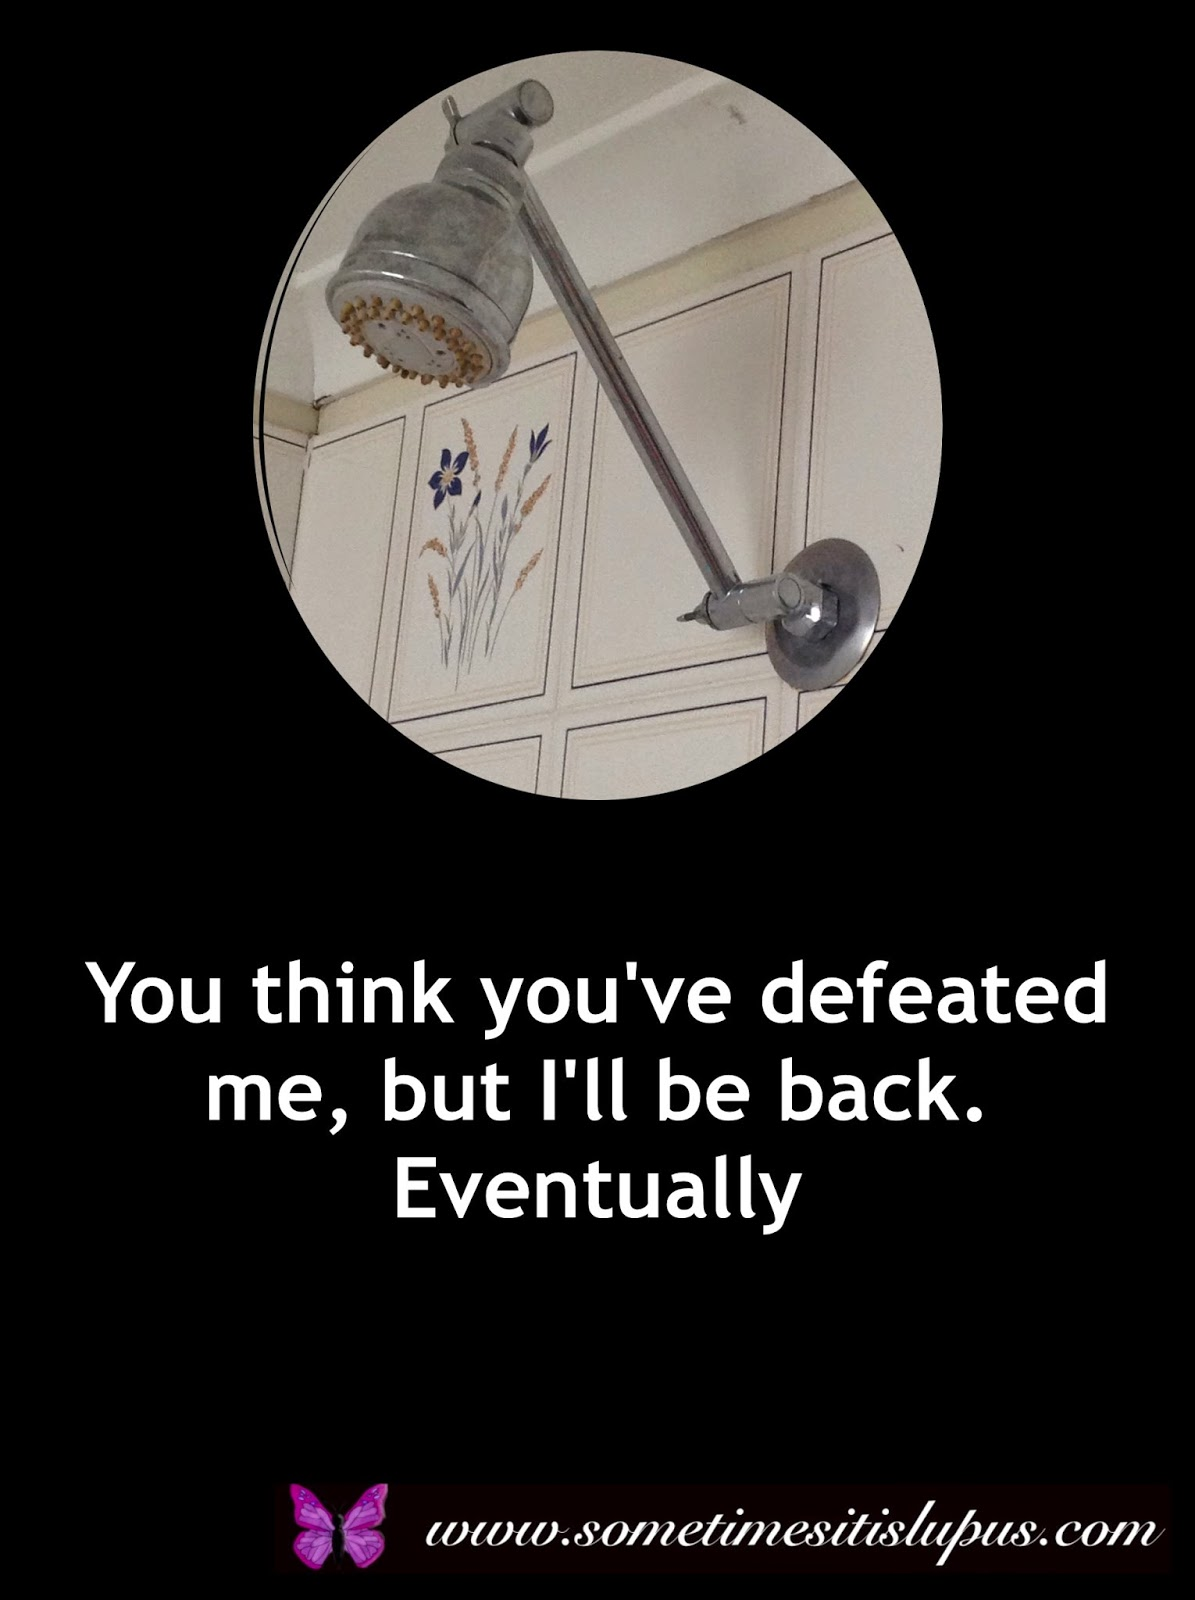 Image: Shower. Text: You think you've defeated me, but I'll be back. Evenutally.